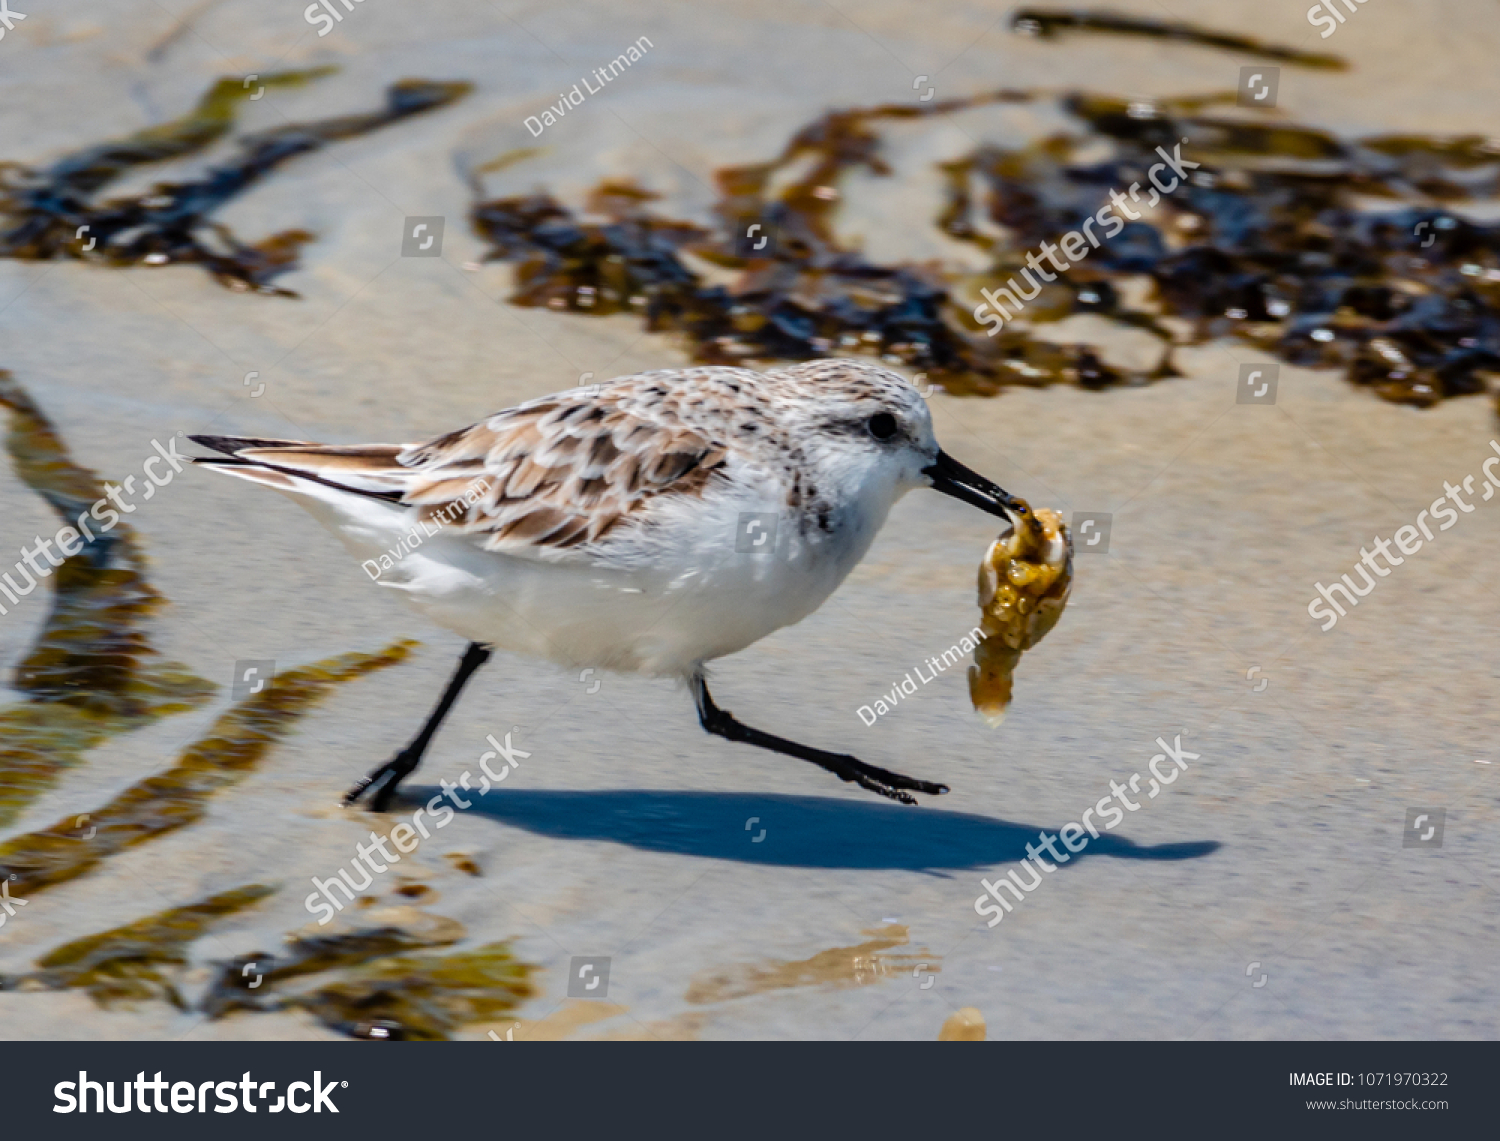 A Western Snowy Plover with a tasty seafood morsel, flees from the flock to enjoy its feast at Asilomar Beach in Pacific Grove, California, near Carmel, along the Monterey Bay of the central coast.